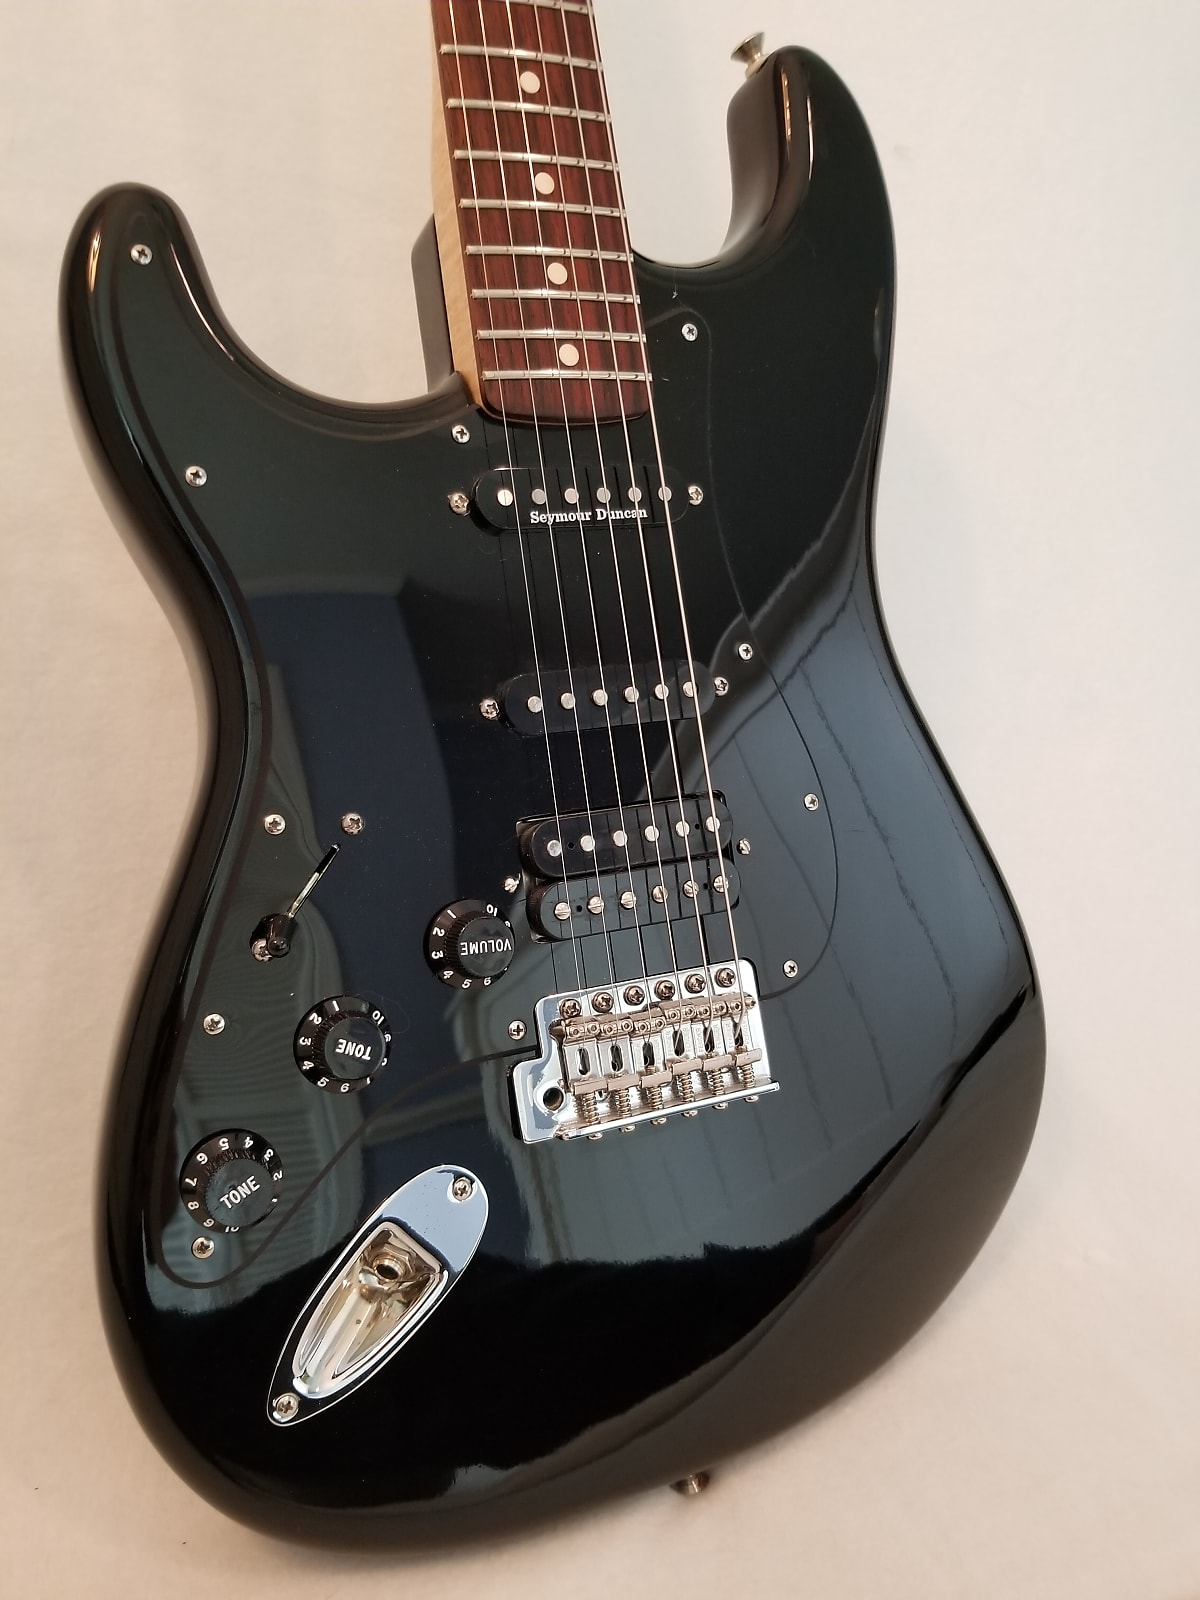 Fender Stratocaster MIM 2011 Black Gloss Left Handed - Many Mods